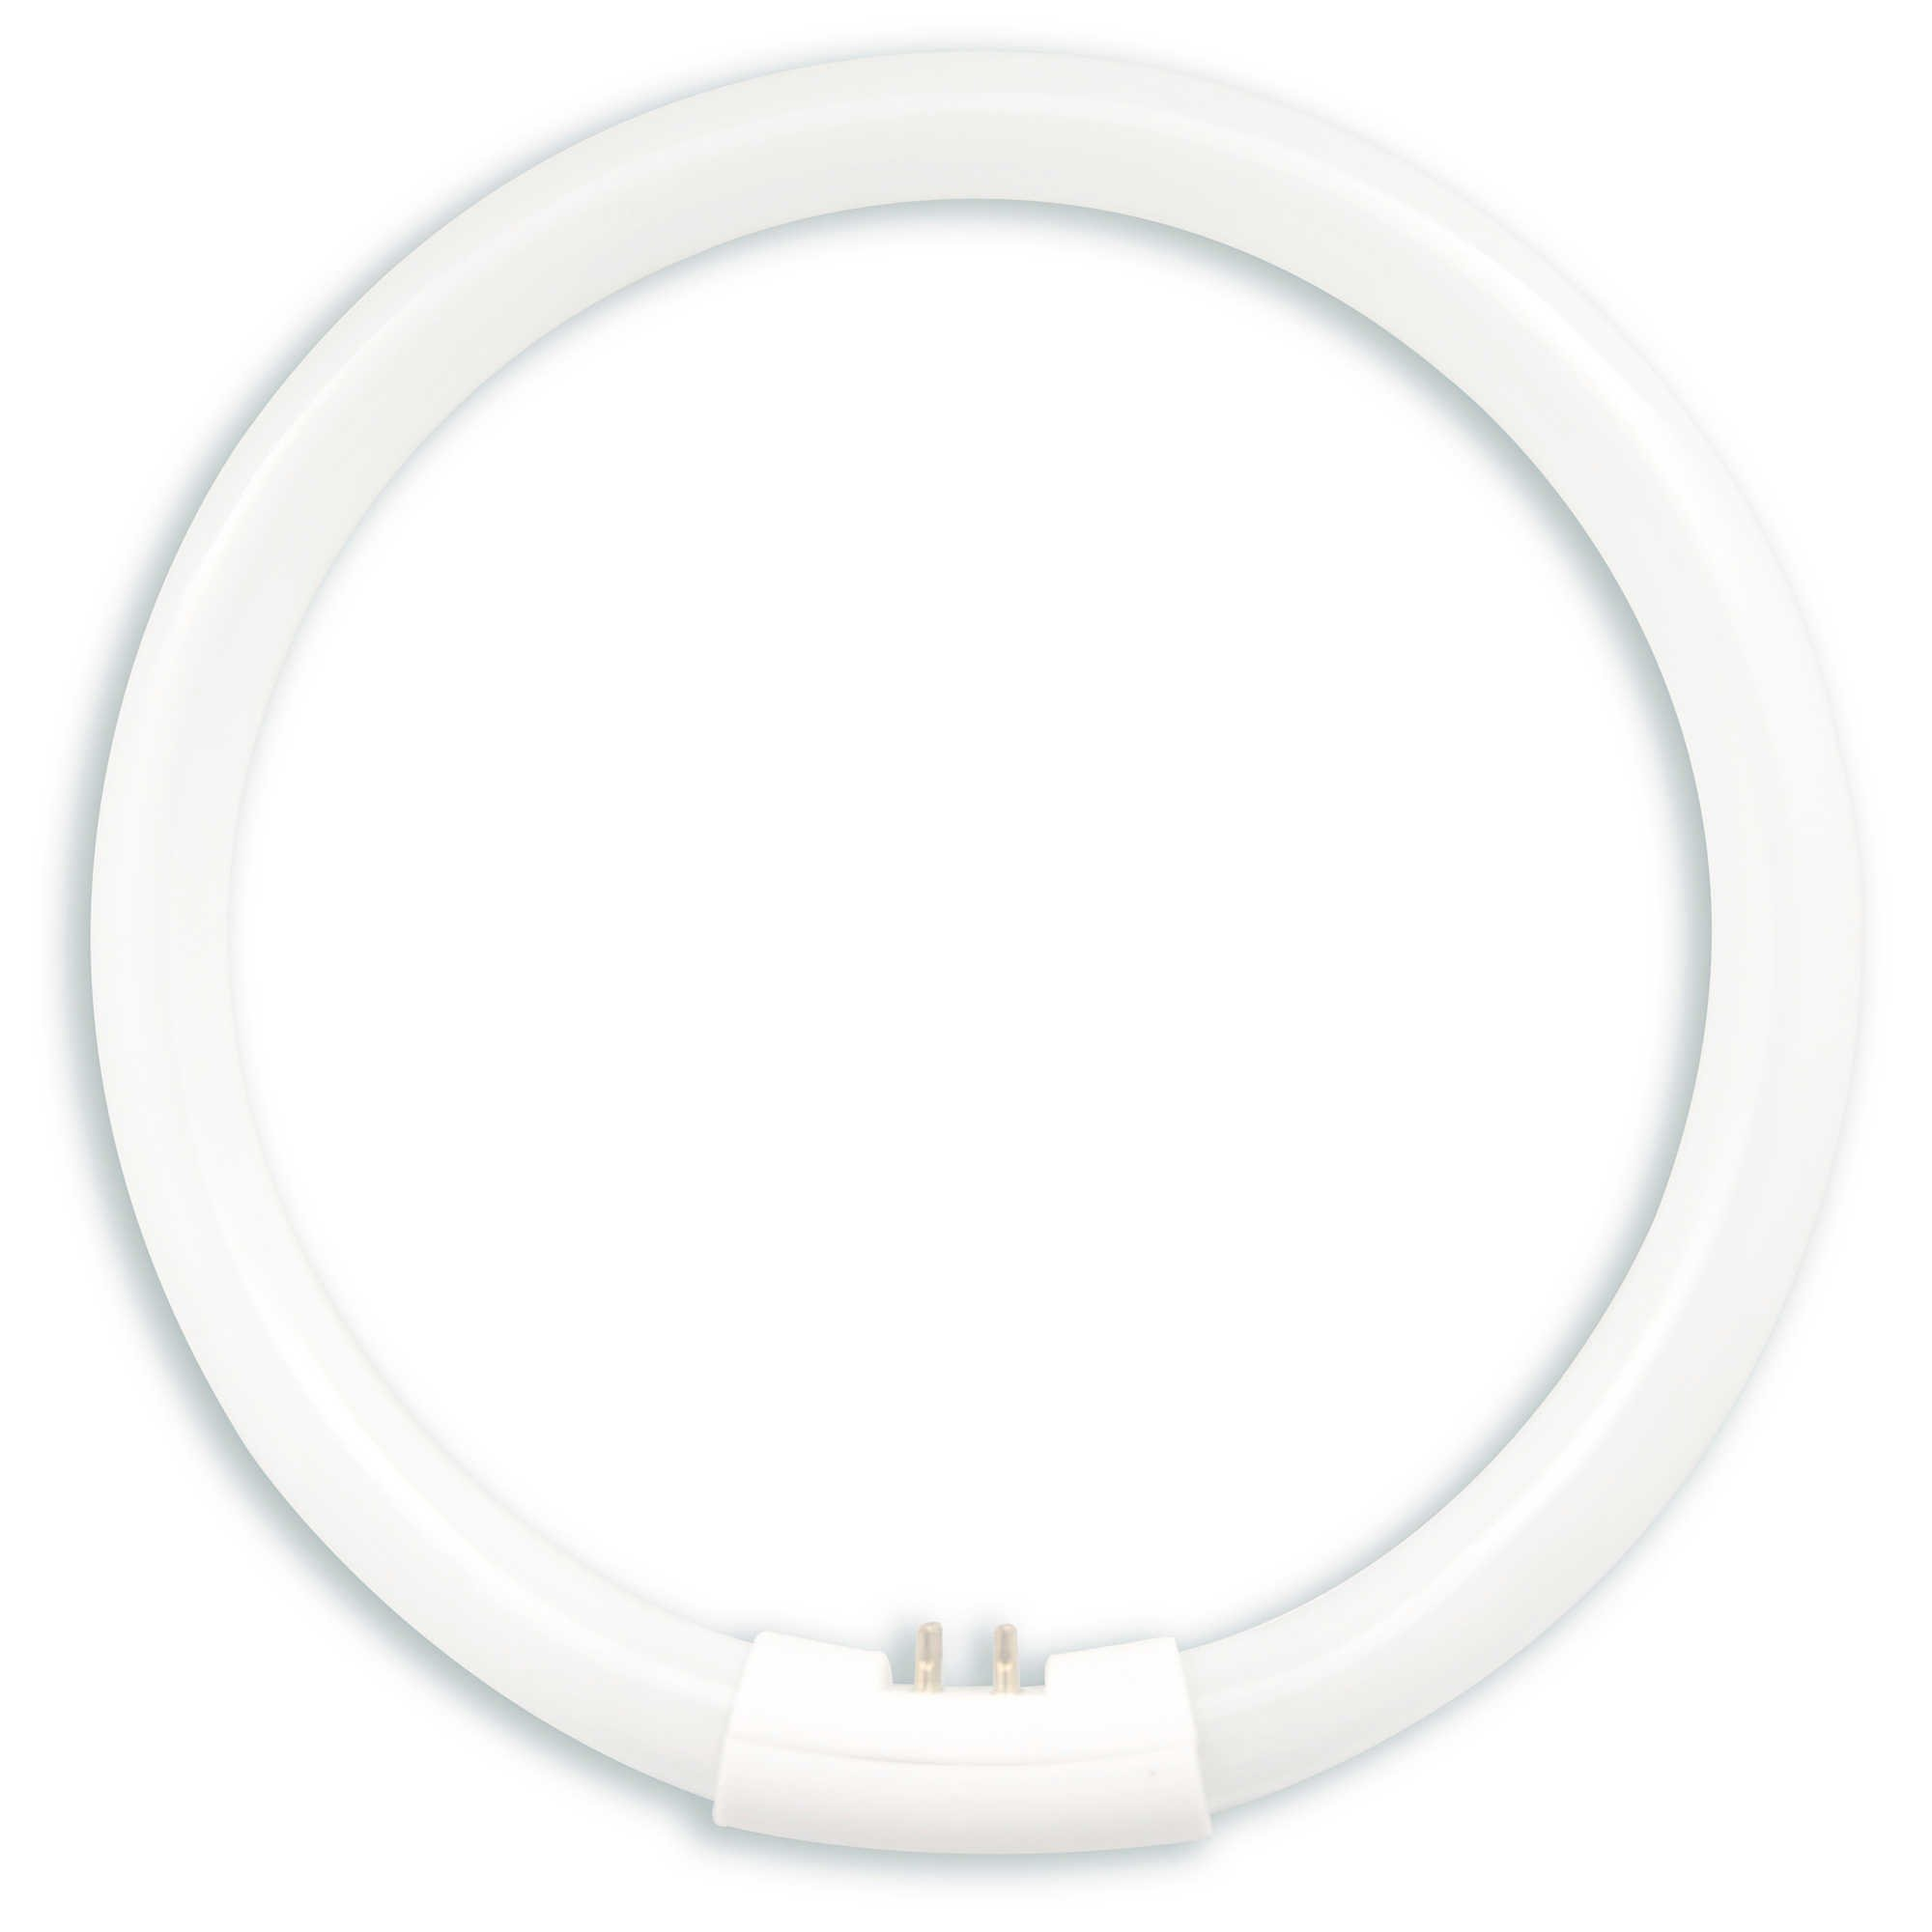 Replacement for Zadro 7-in Surround Light T5 22W Makeup Mirror Bulb